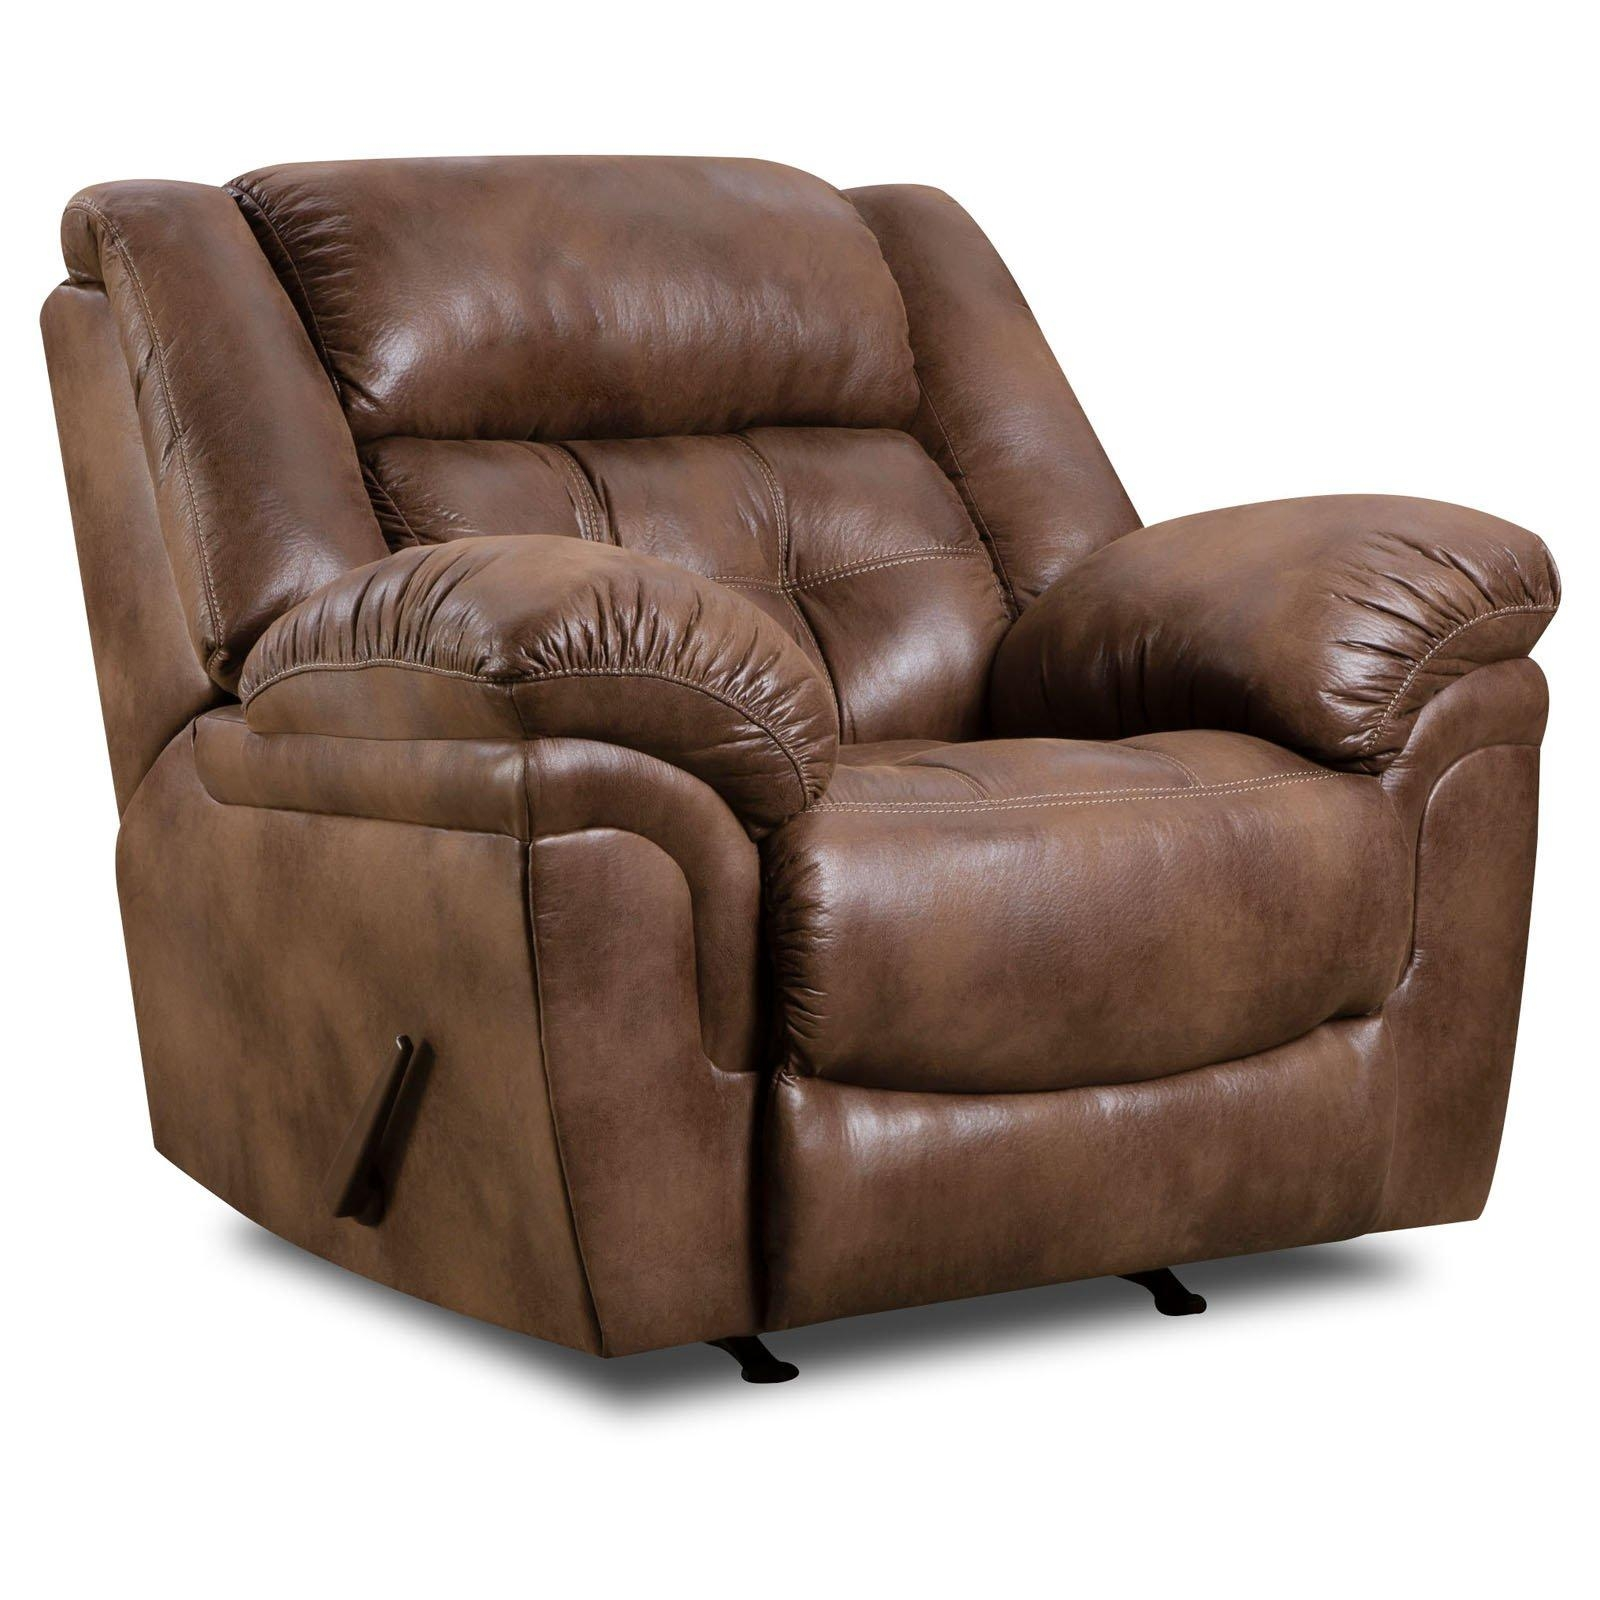 Simmons Upholstery Wisconsin Beautyrest Sofa – Chocolate | Hayneedle With Simmons Leather Sofas (Image 18 of 20)